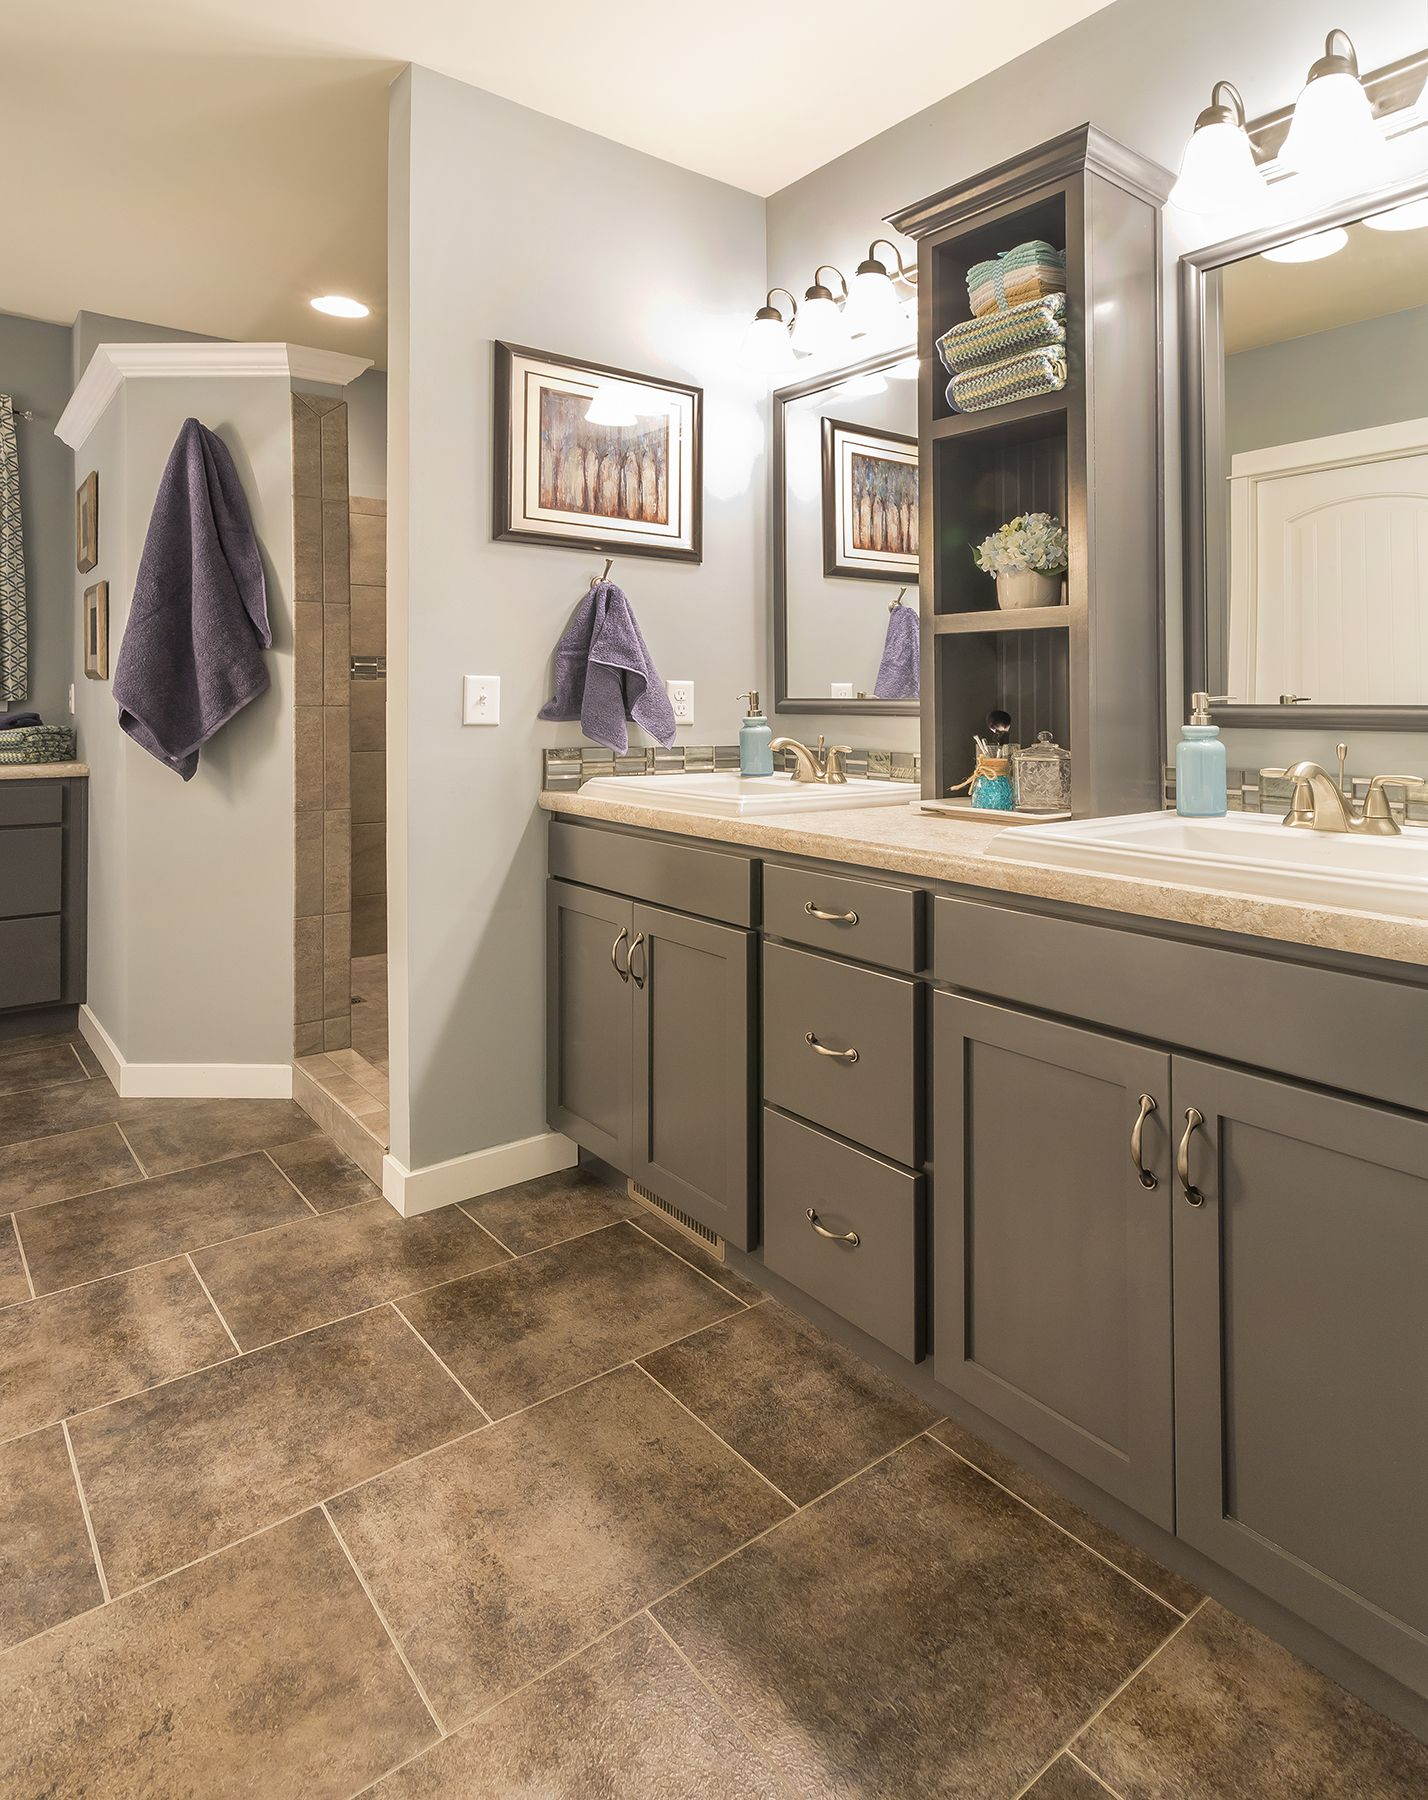 This Gray Vanity And Warm And Inviting In This Master Bath Shadesofgray Vanity Cabinetry Col Modular Homes Modular Home Manufacturers Custom Modular Homes